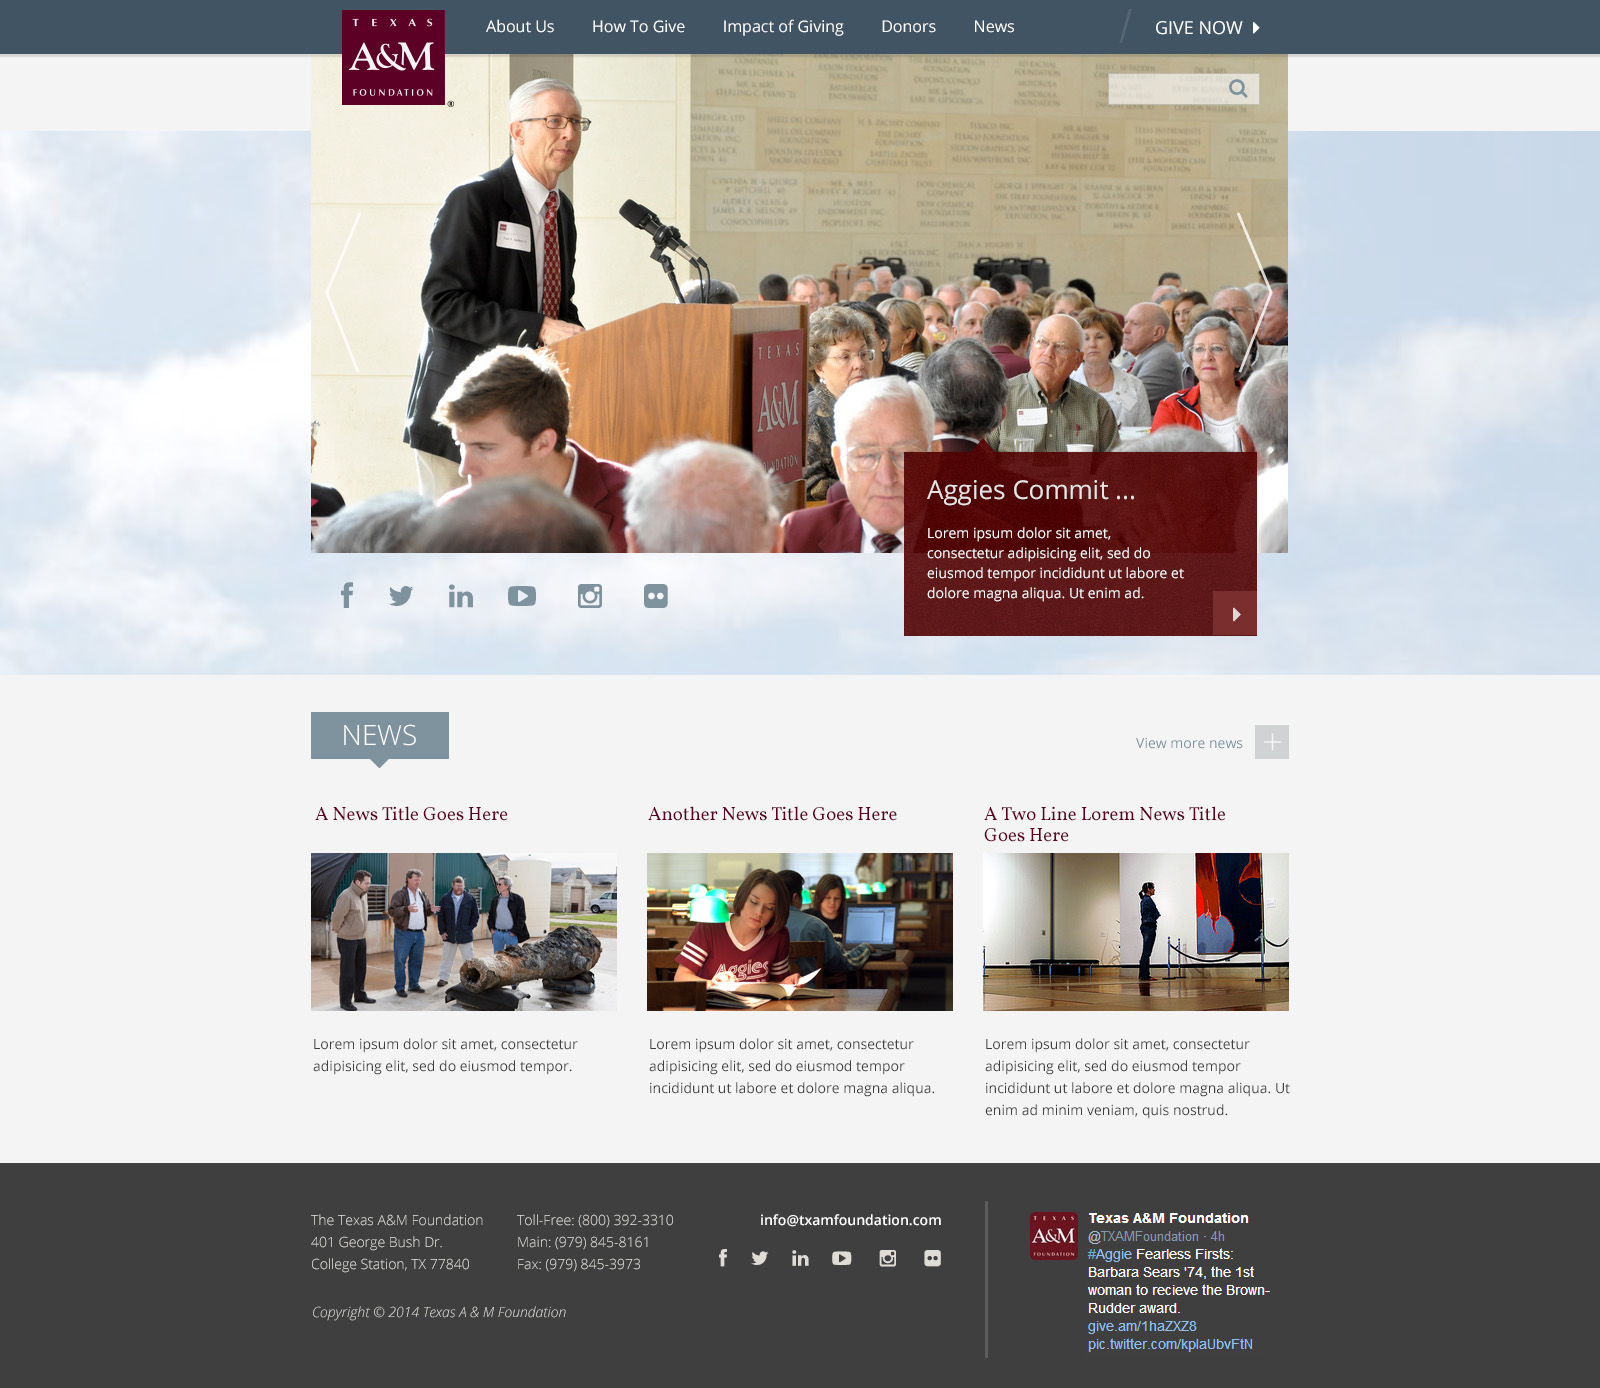 Texas A&M Foundation